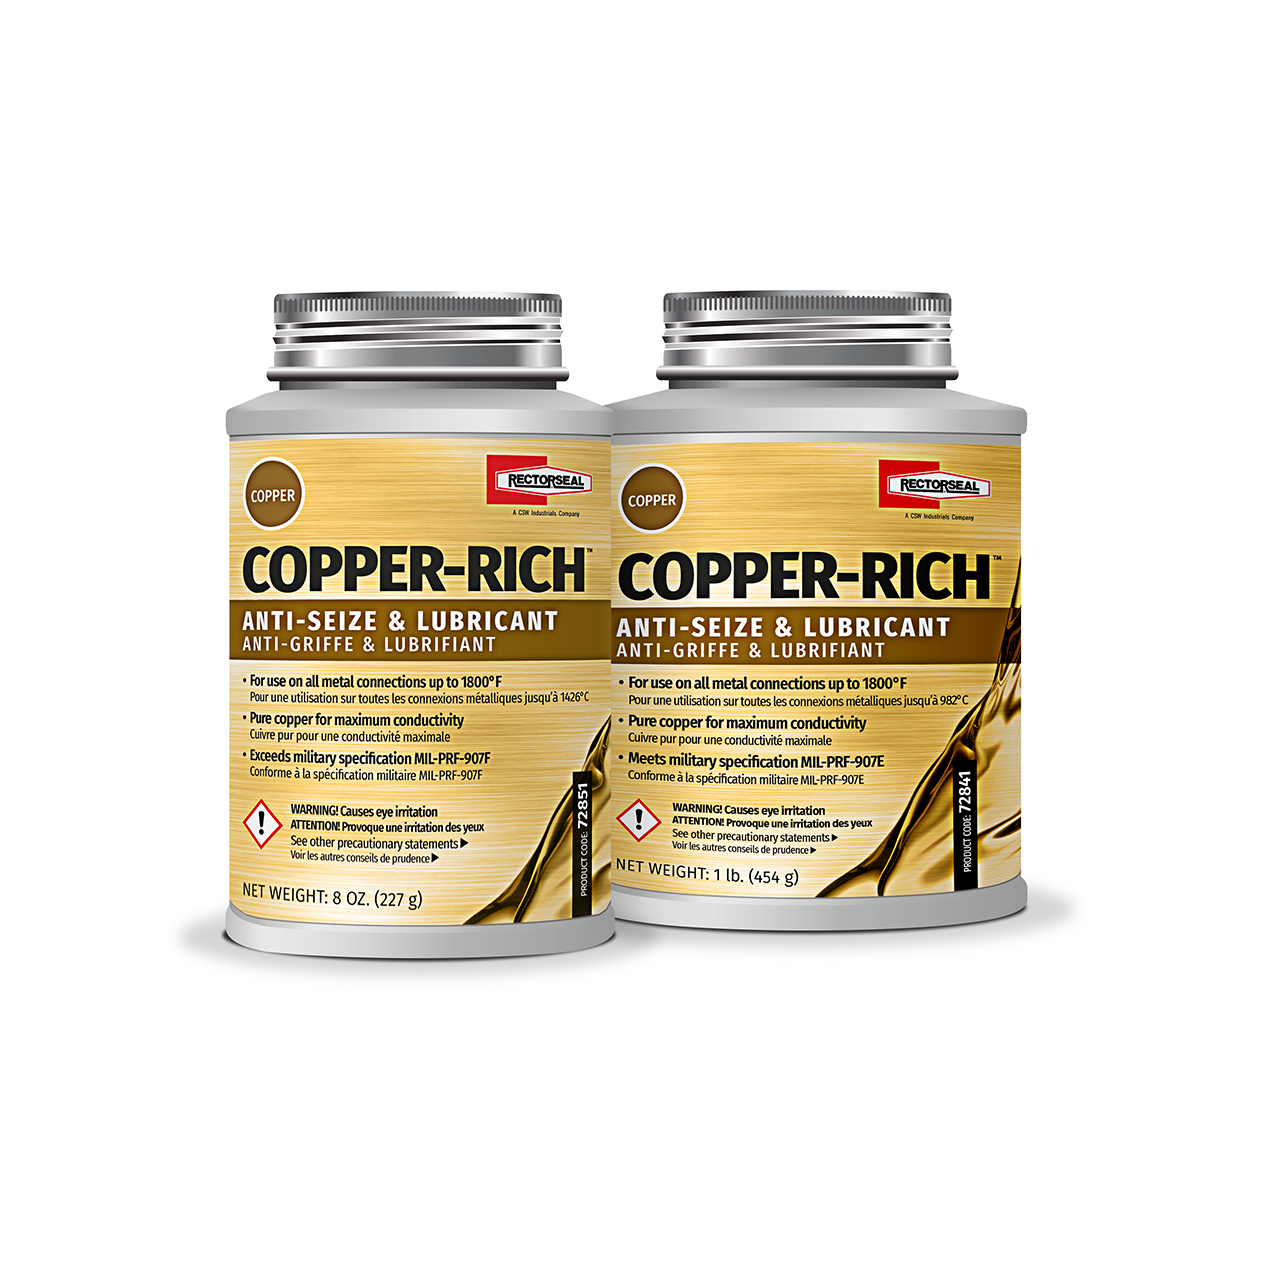 Copper-Rich Family